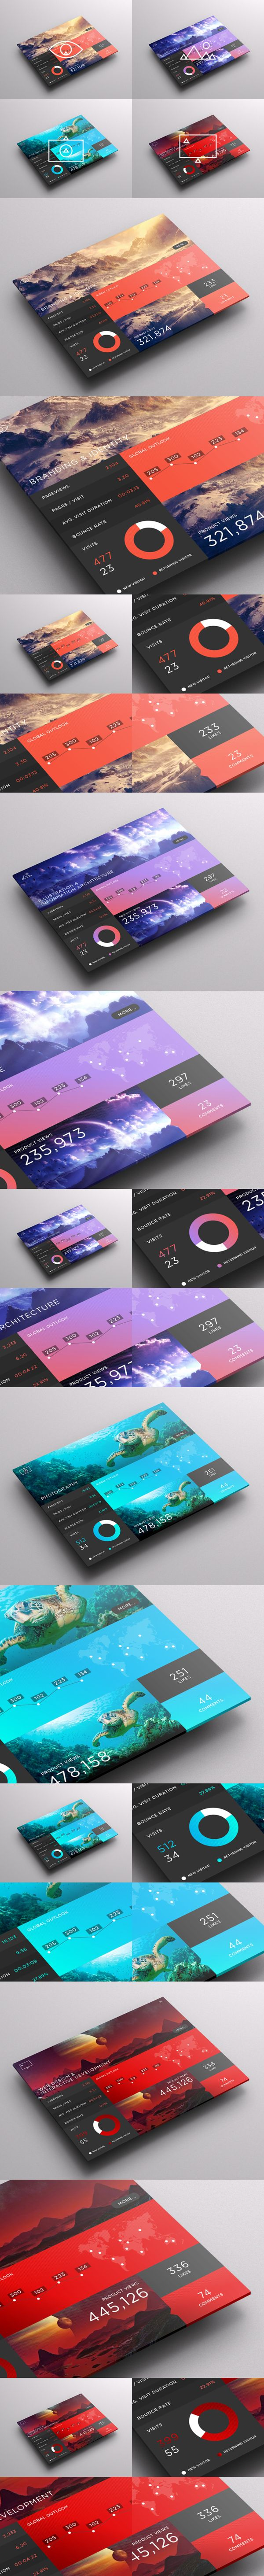 SJQHUB™ // Visual Data UI dashboard. Also, wouldn't it be nice a tablet with a real full size screen?